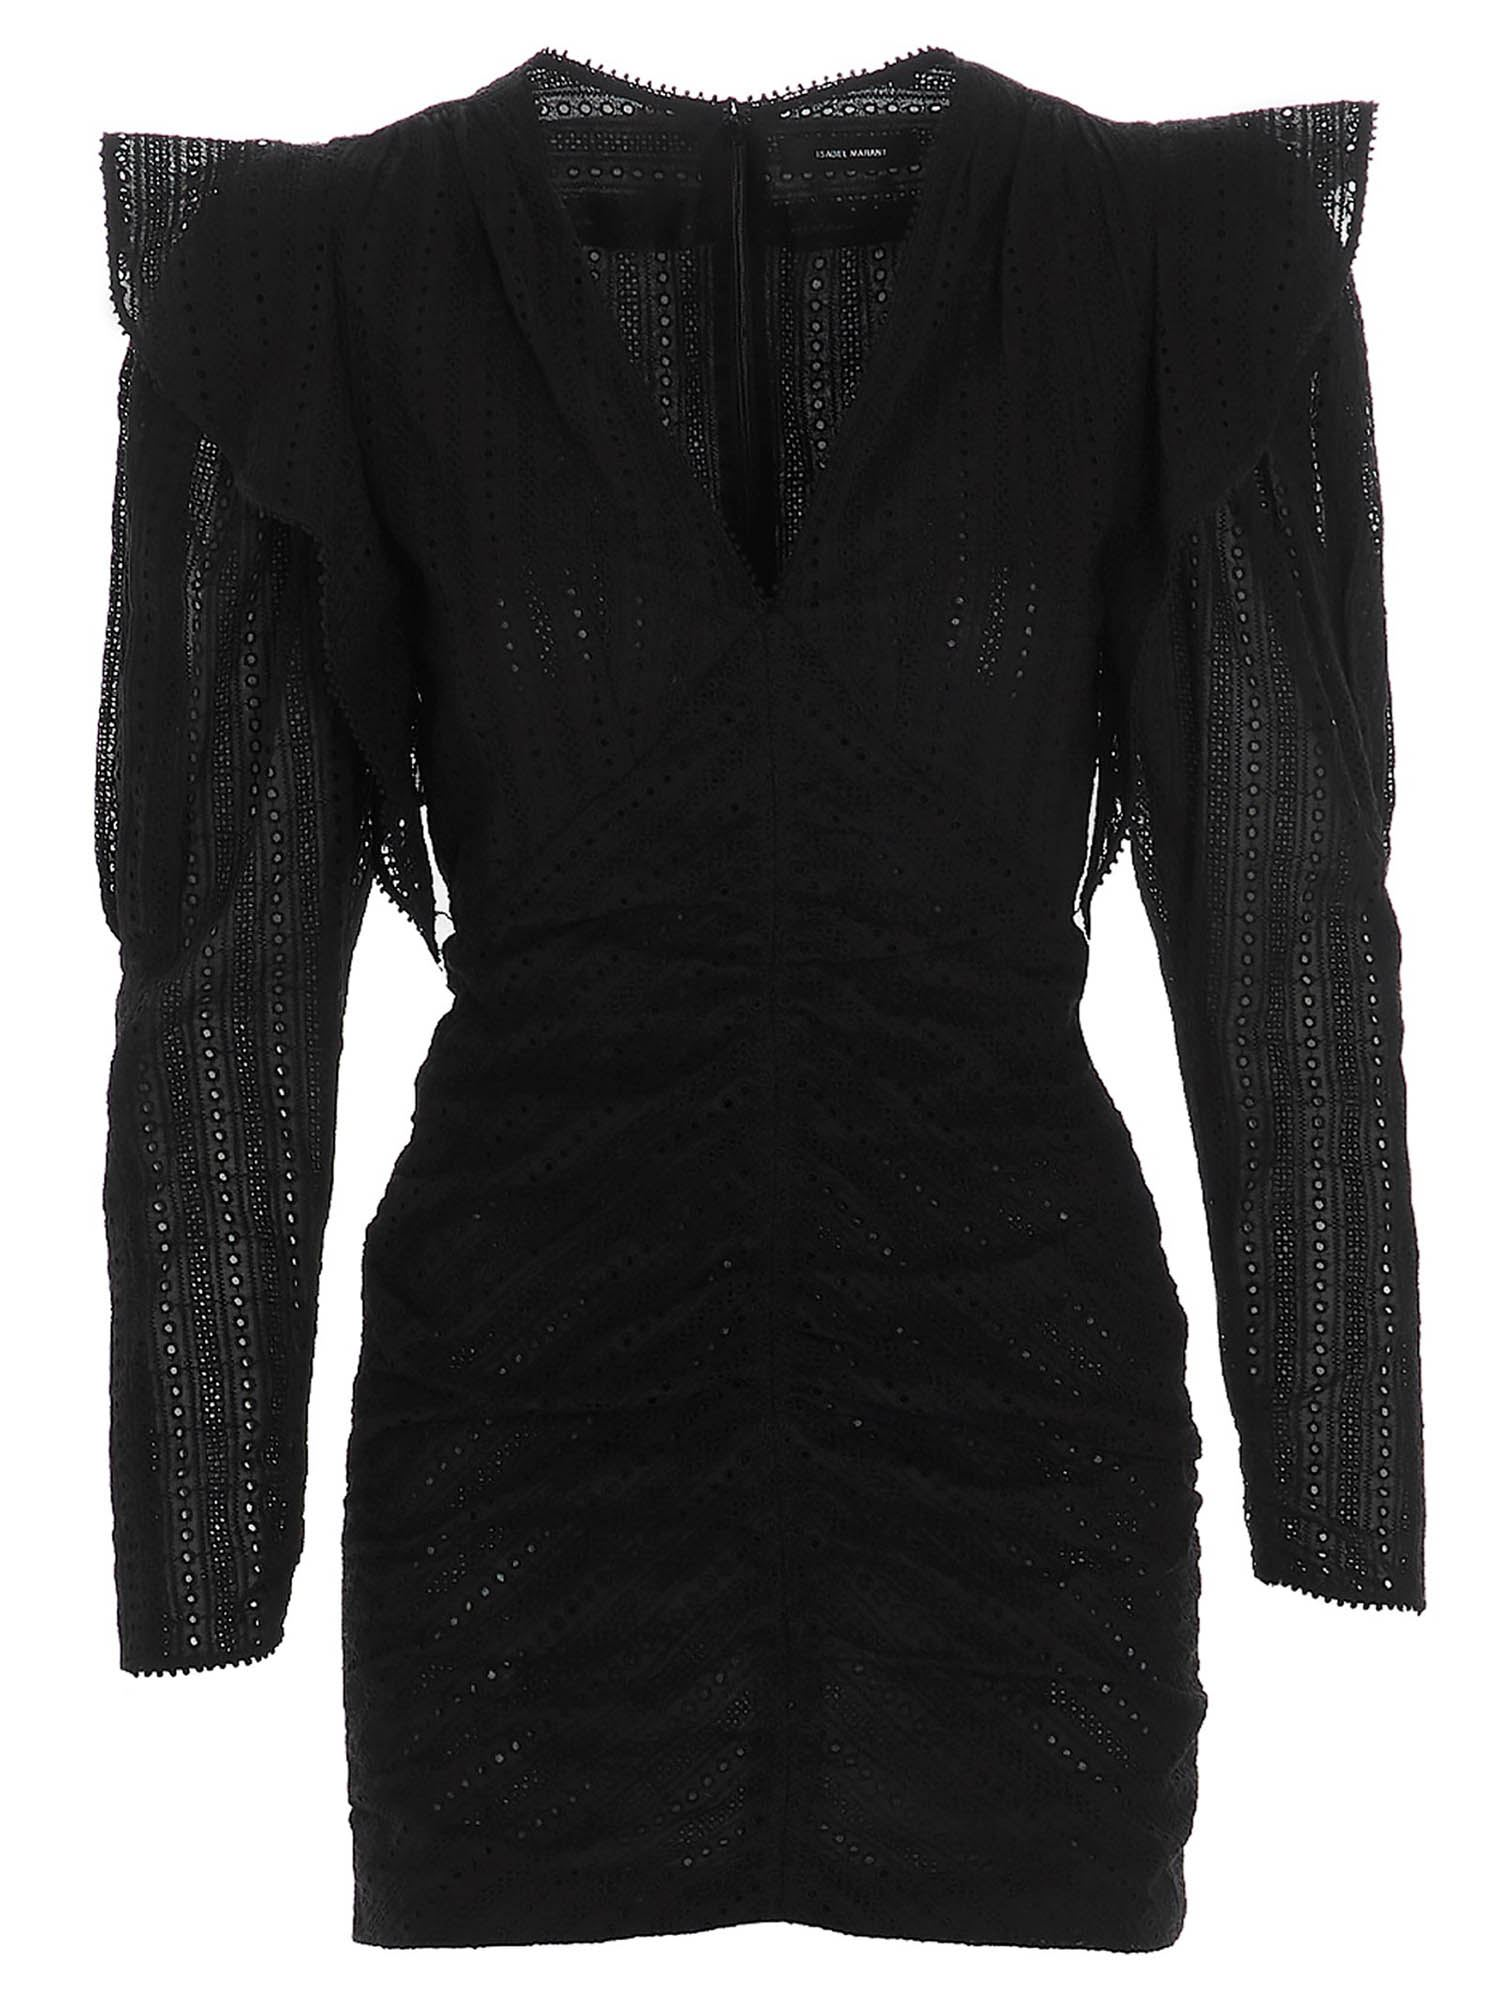 Isabel Marant ISABEL MARANT GETYA SHORT DRESS WITH OPENWORK IN BLACK